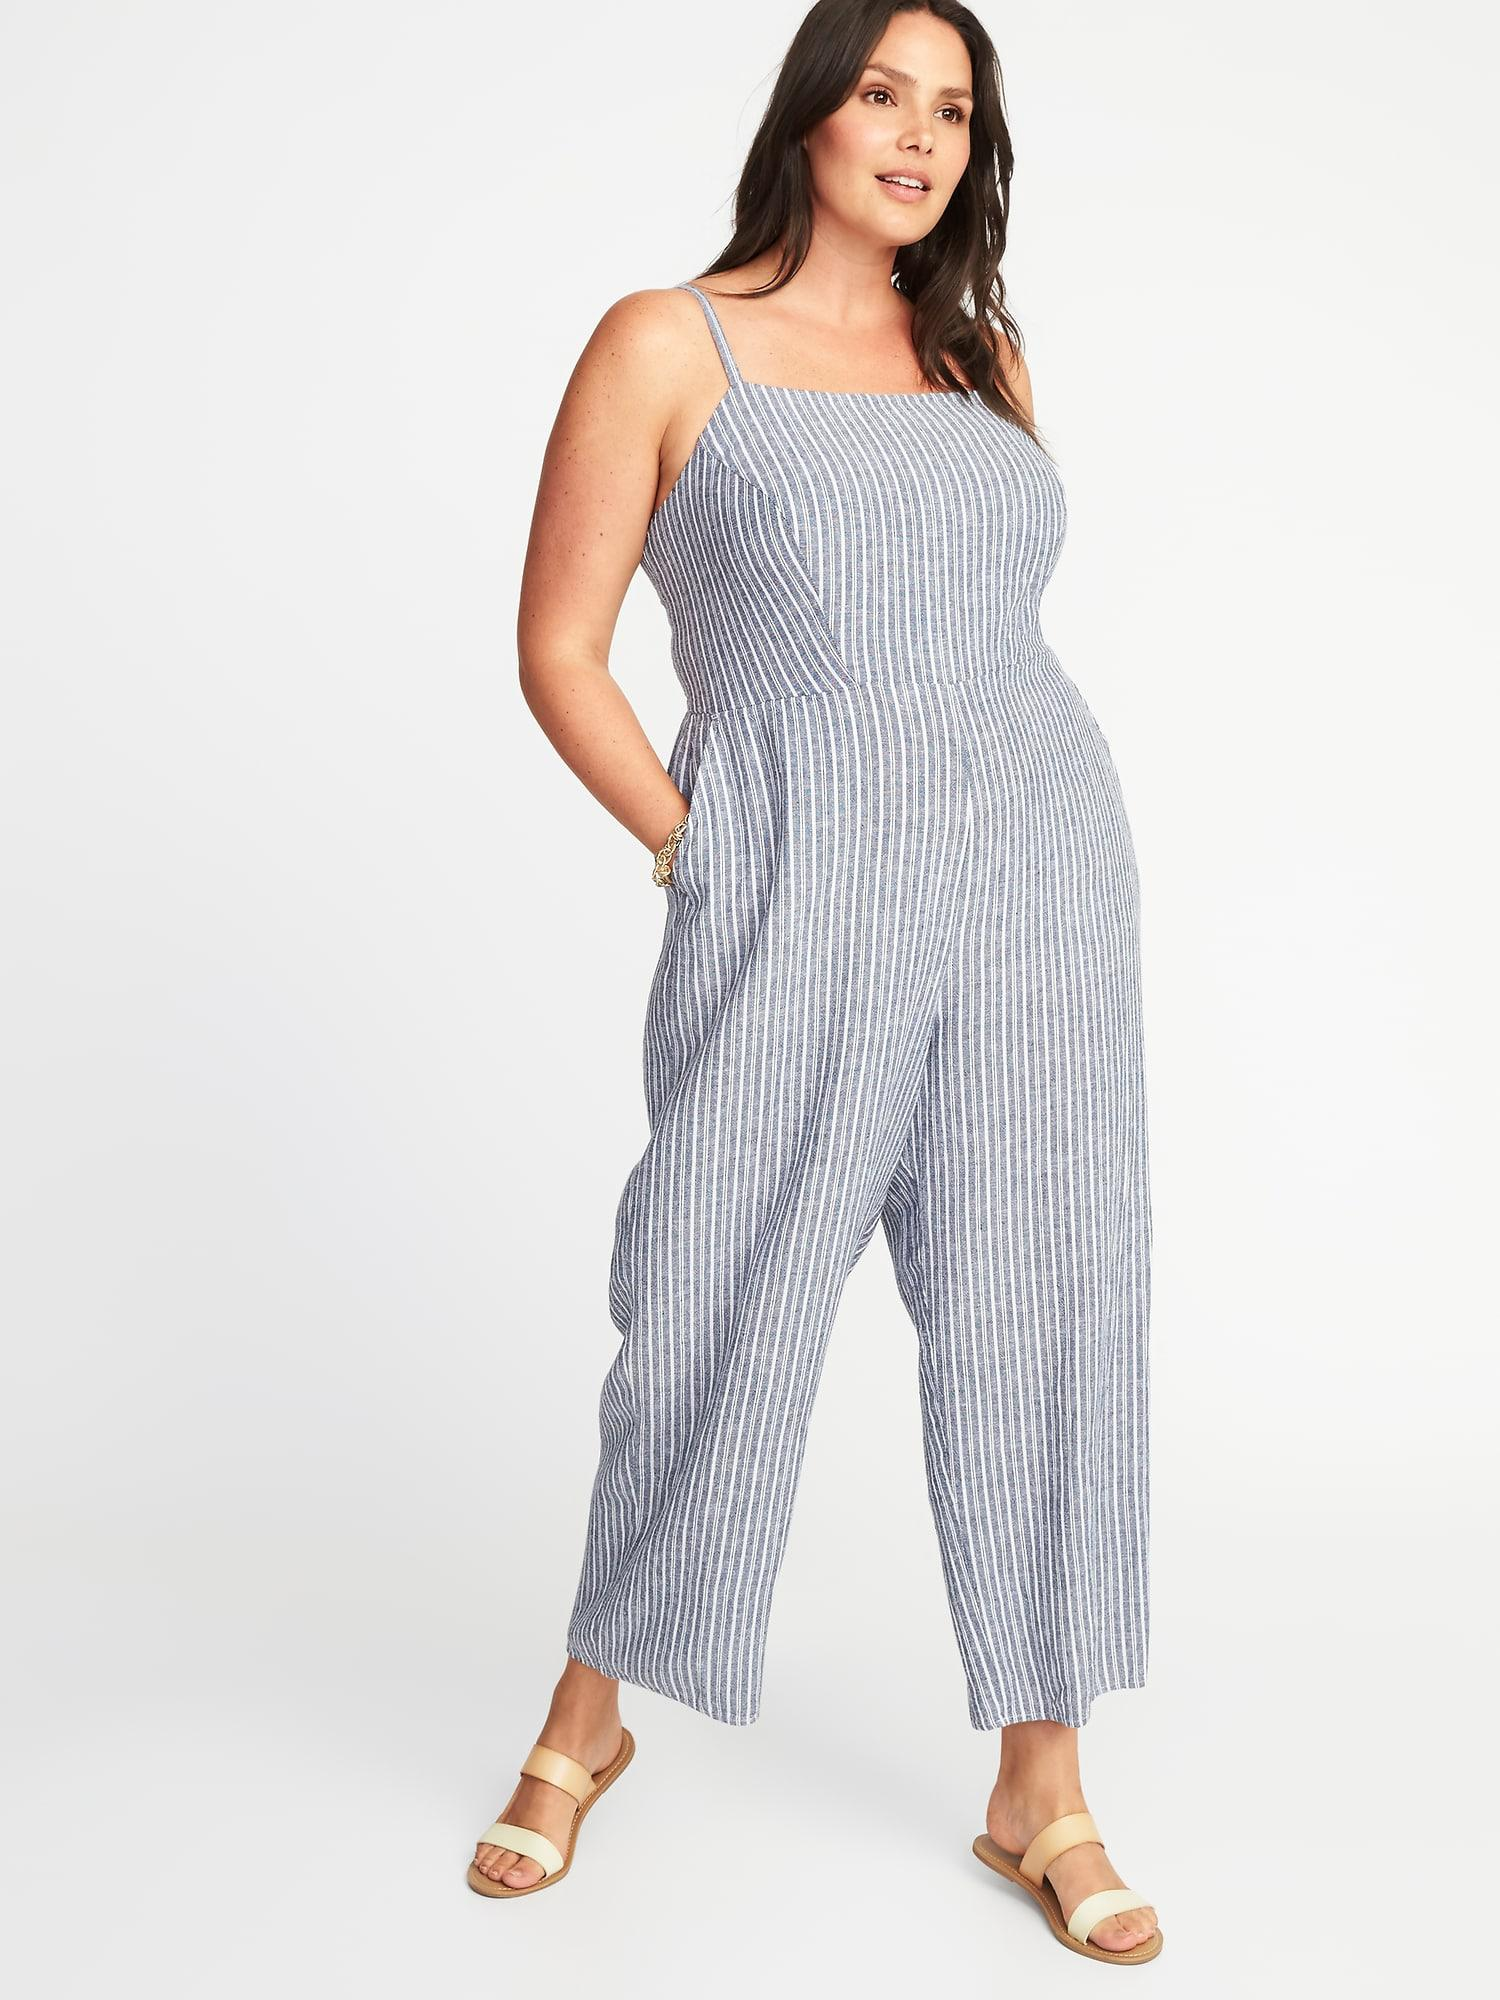 720b784cdd23 Lyst - Old Navy Plus-size Striped Square-neck Jumpsuit in Blue